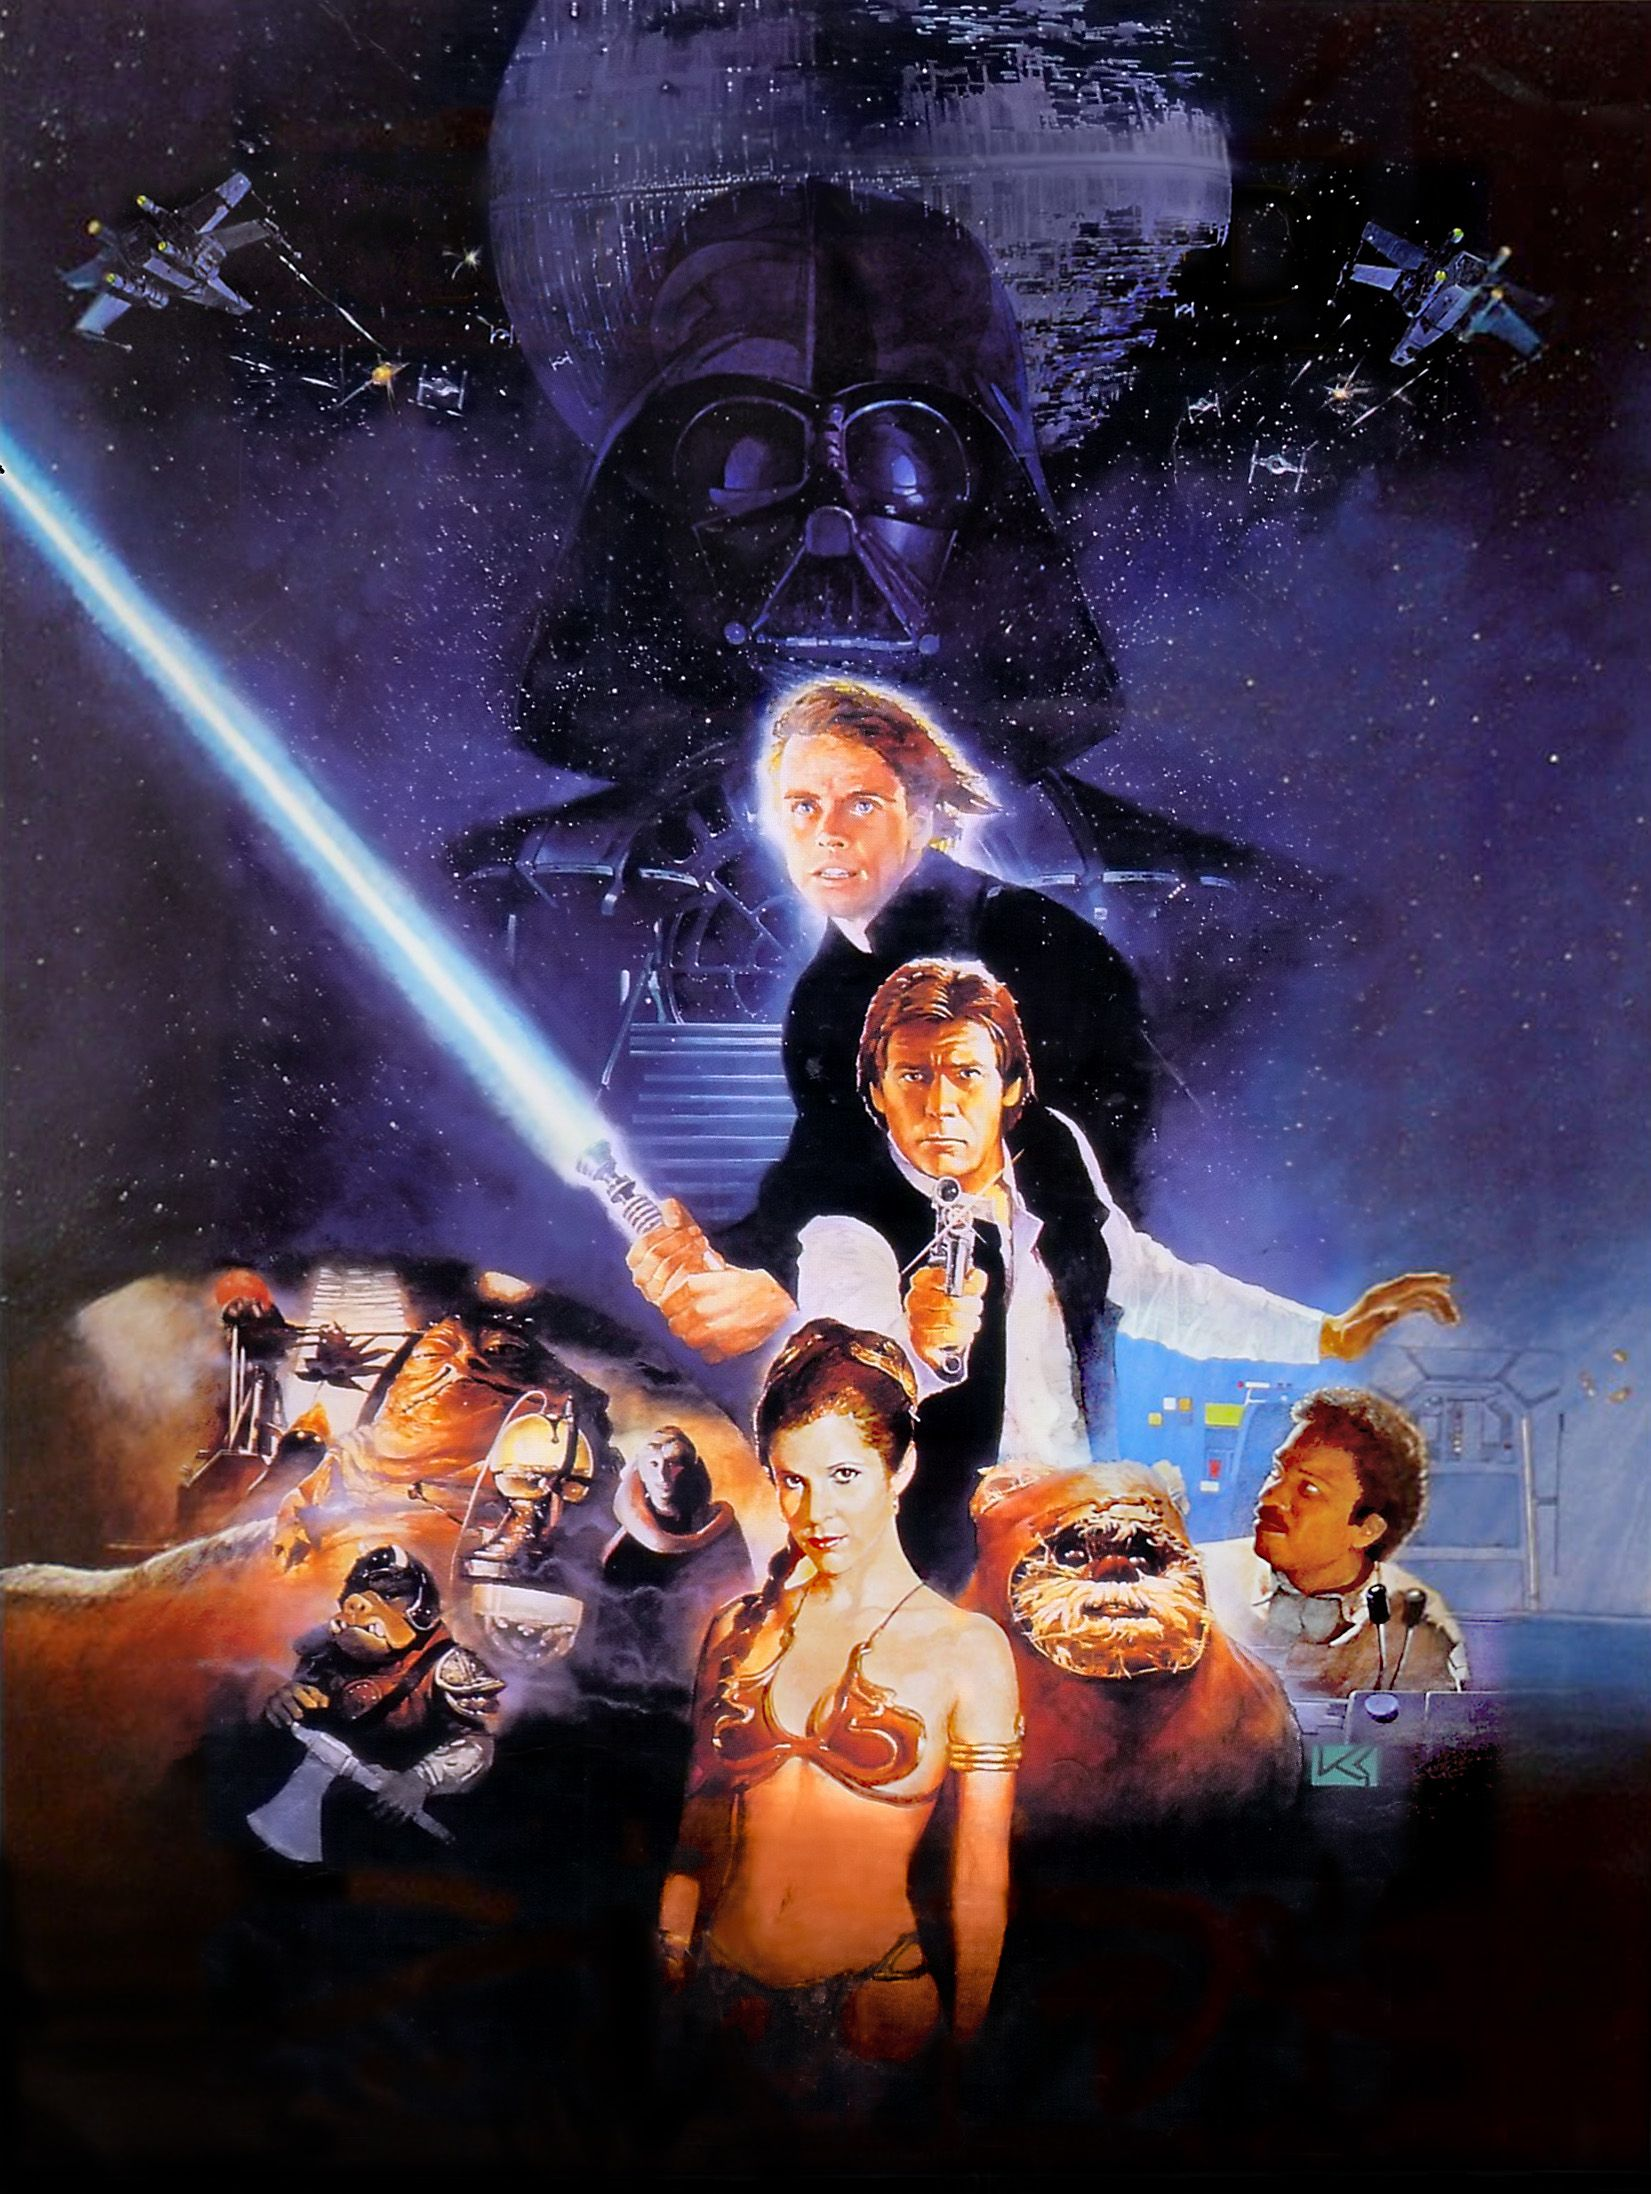 Star Wars Movie Posters All